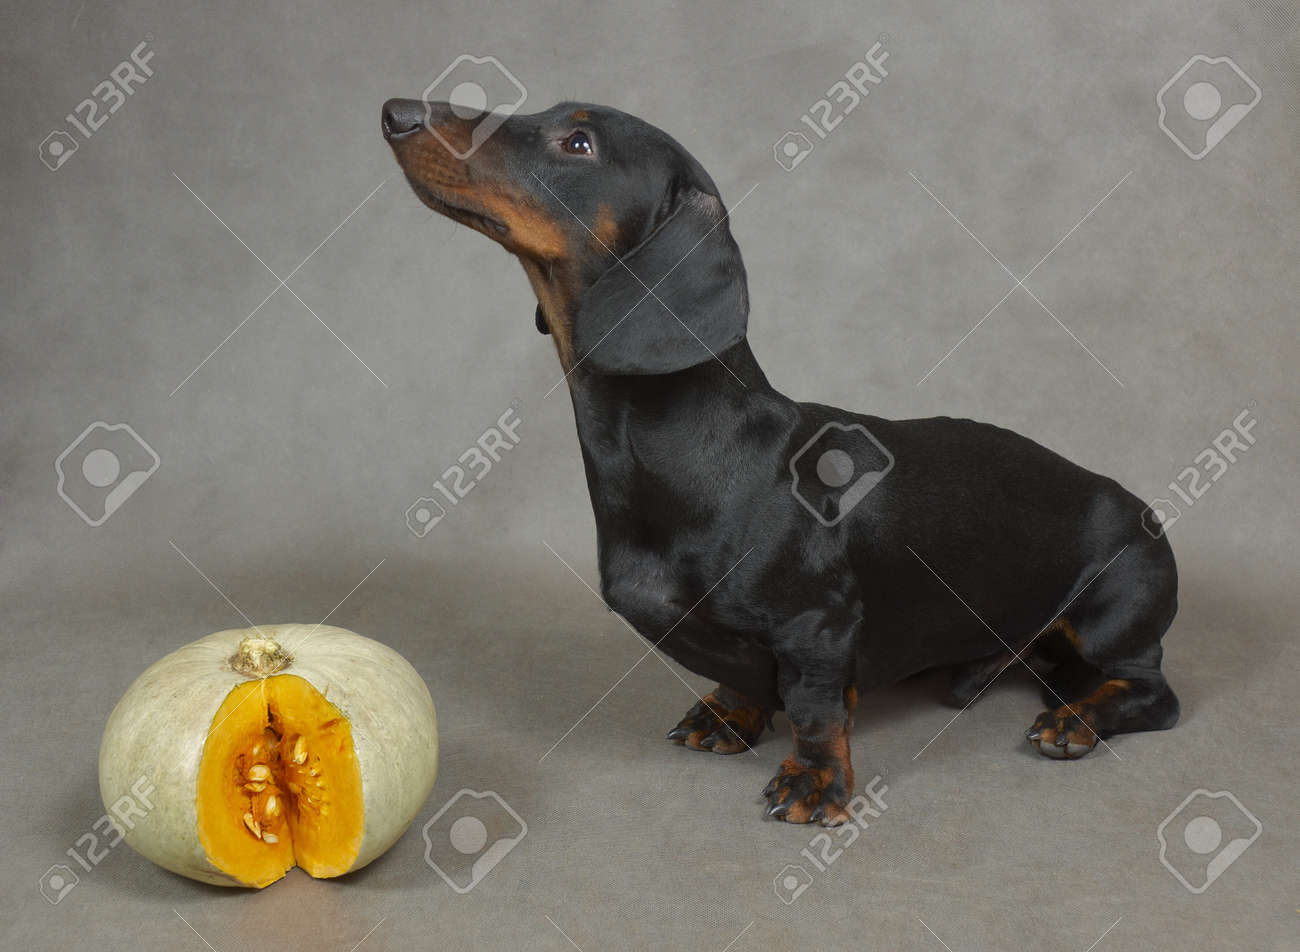 Dachshund and cut pumpkin Stock Photo - 18852848